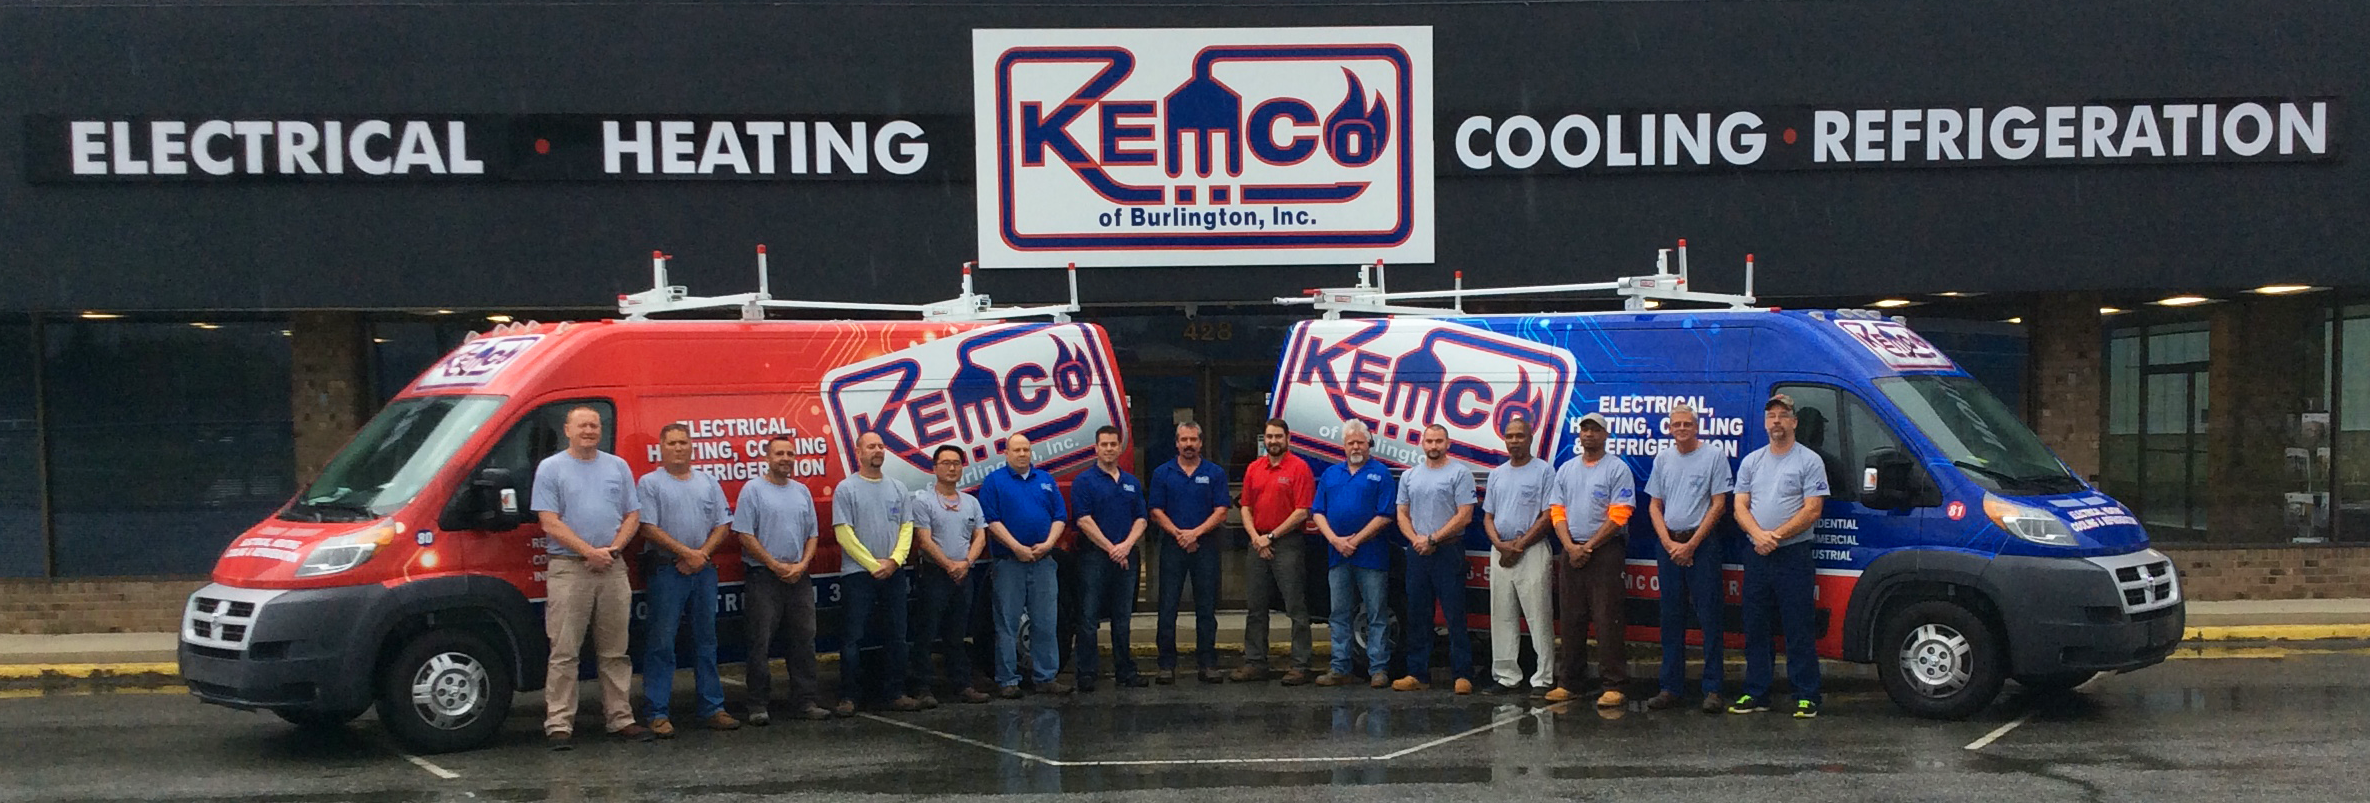 kemco_electric_hvac_service_technicians